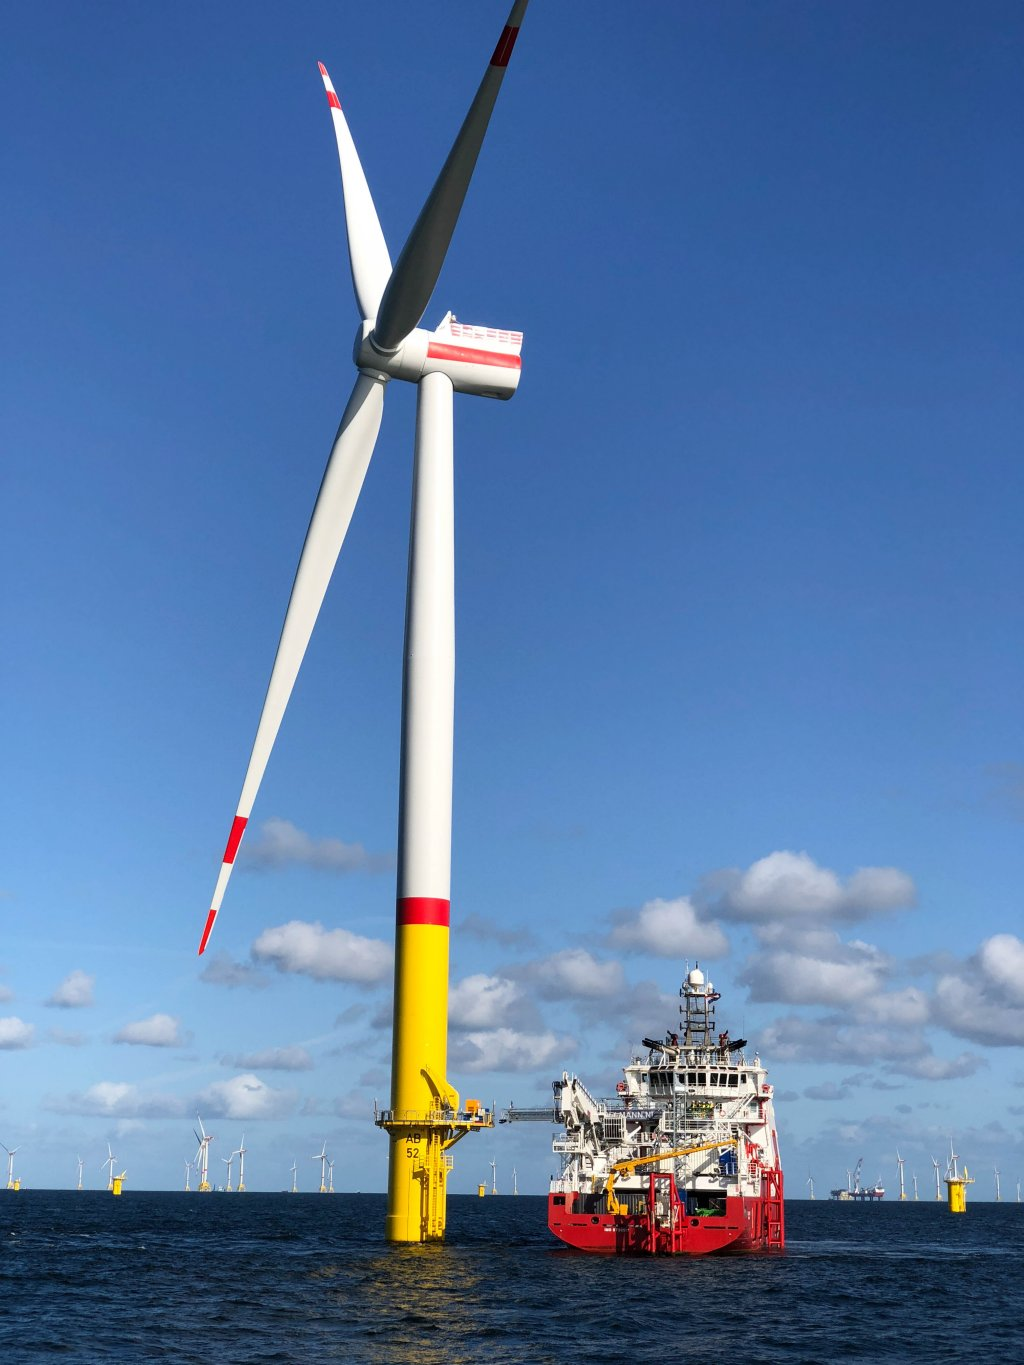 The Arkona offshore wind farm